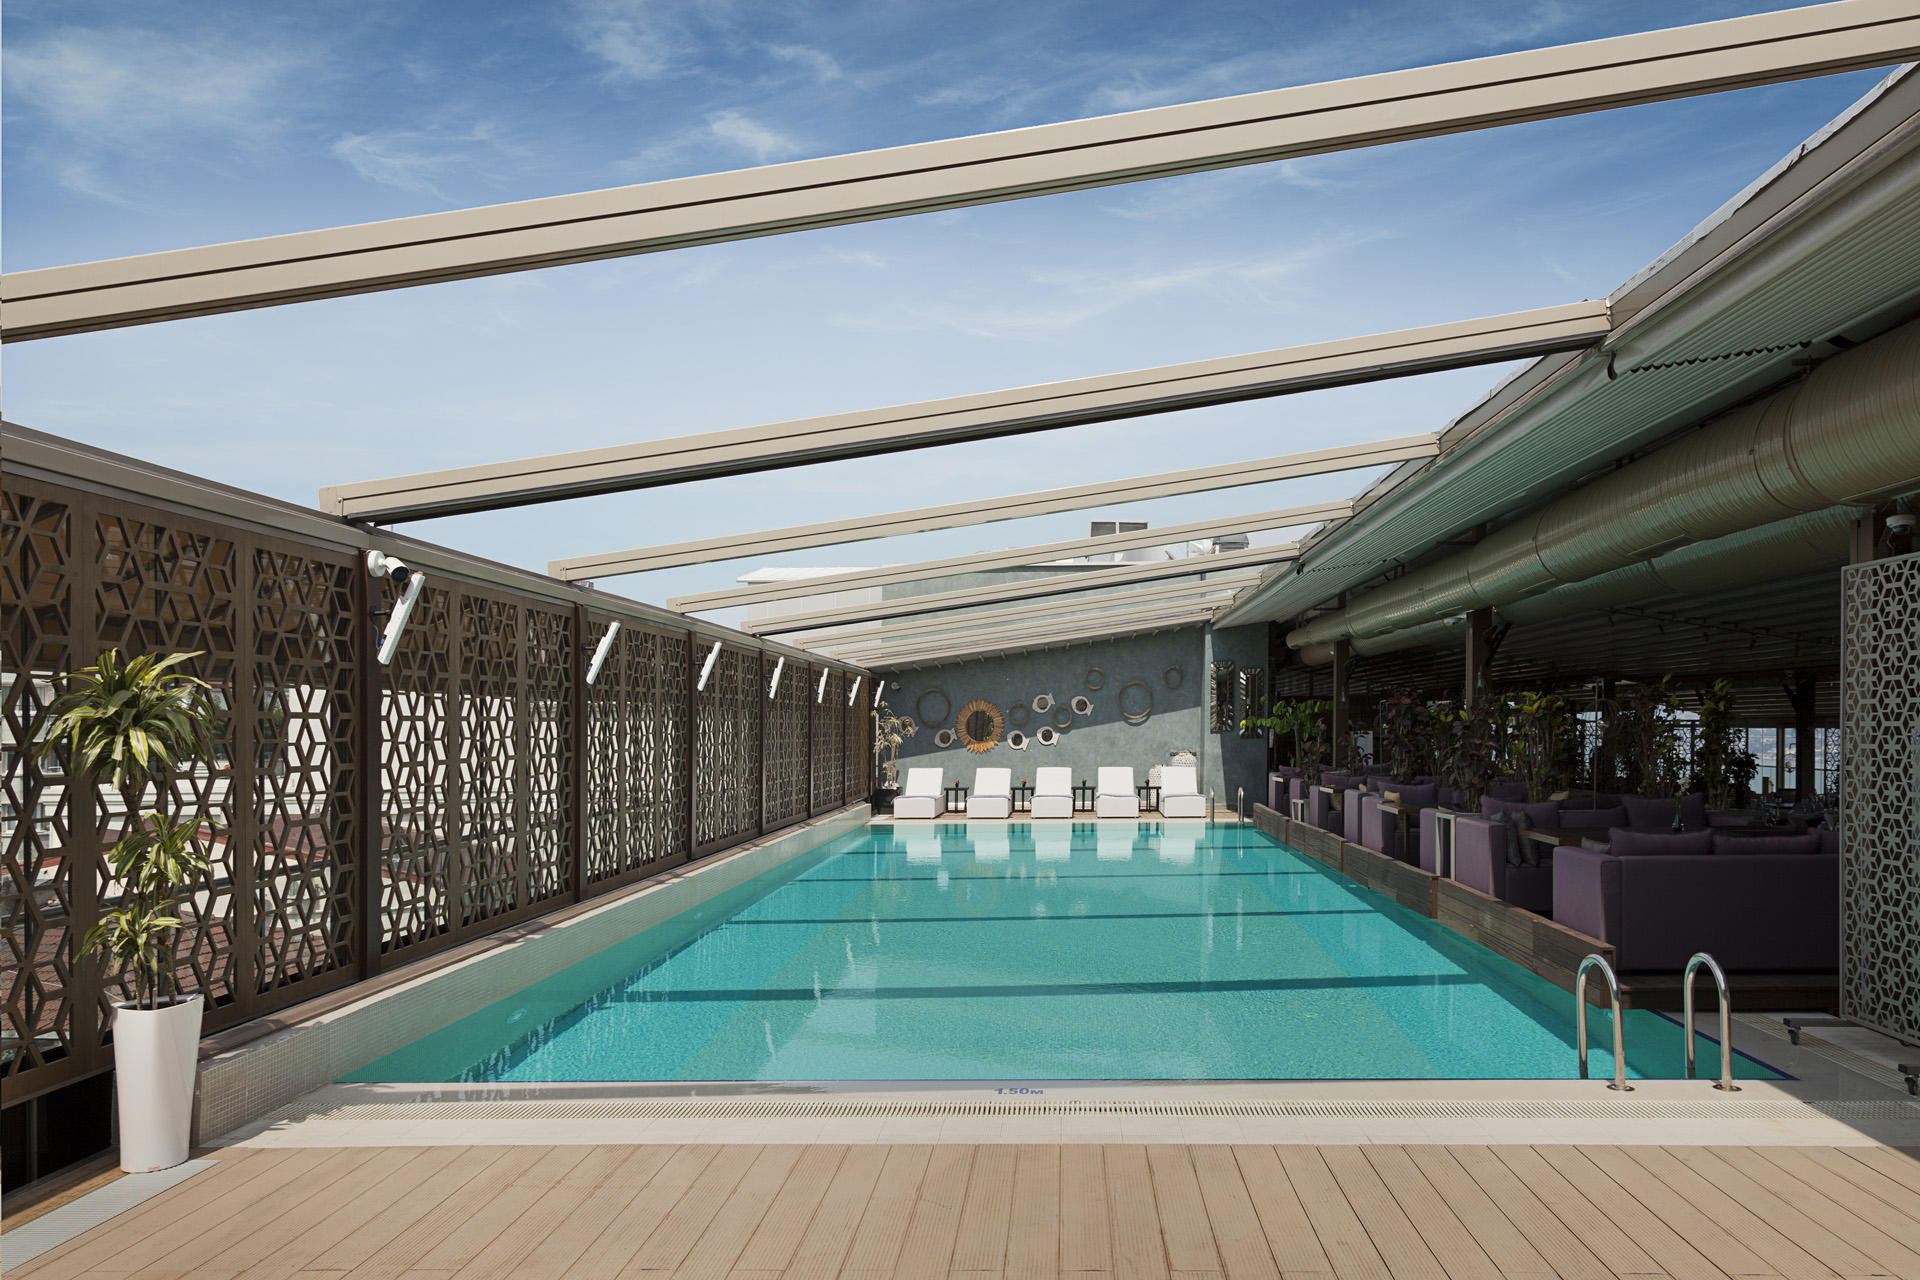 Pool at IZAKA Restaurant & Bar in Istanbul